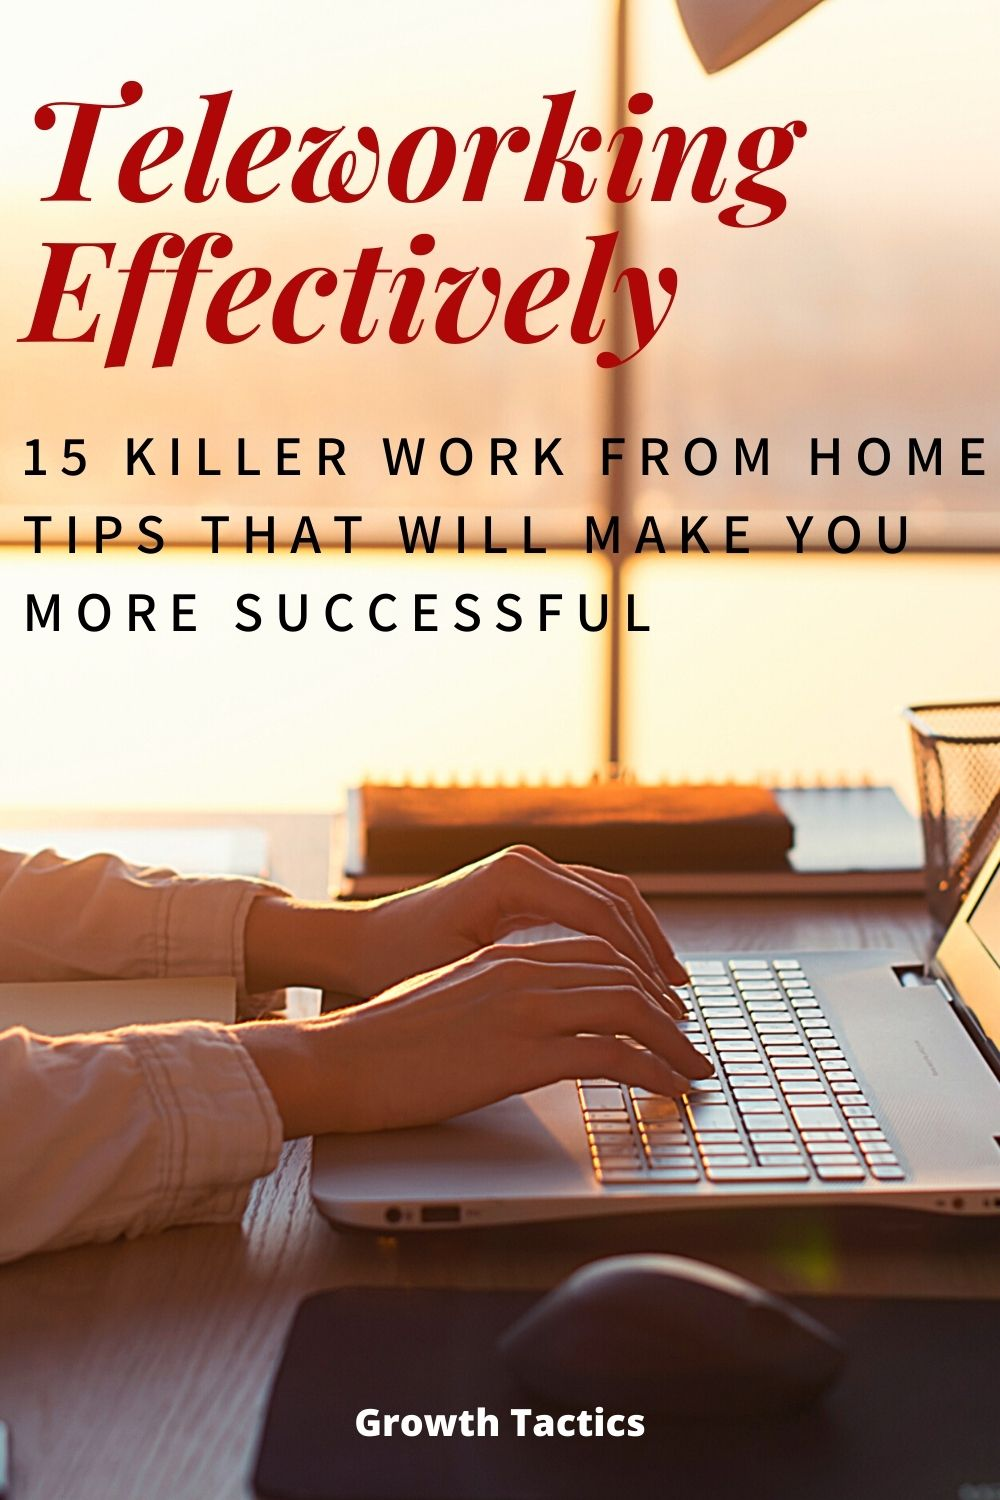 15 Killer Work From Home Tips That Will Make You More Successful